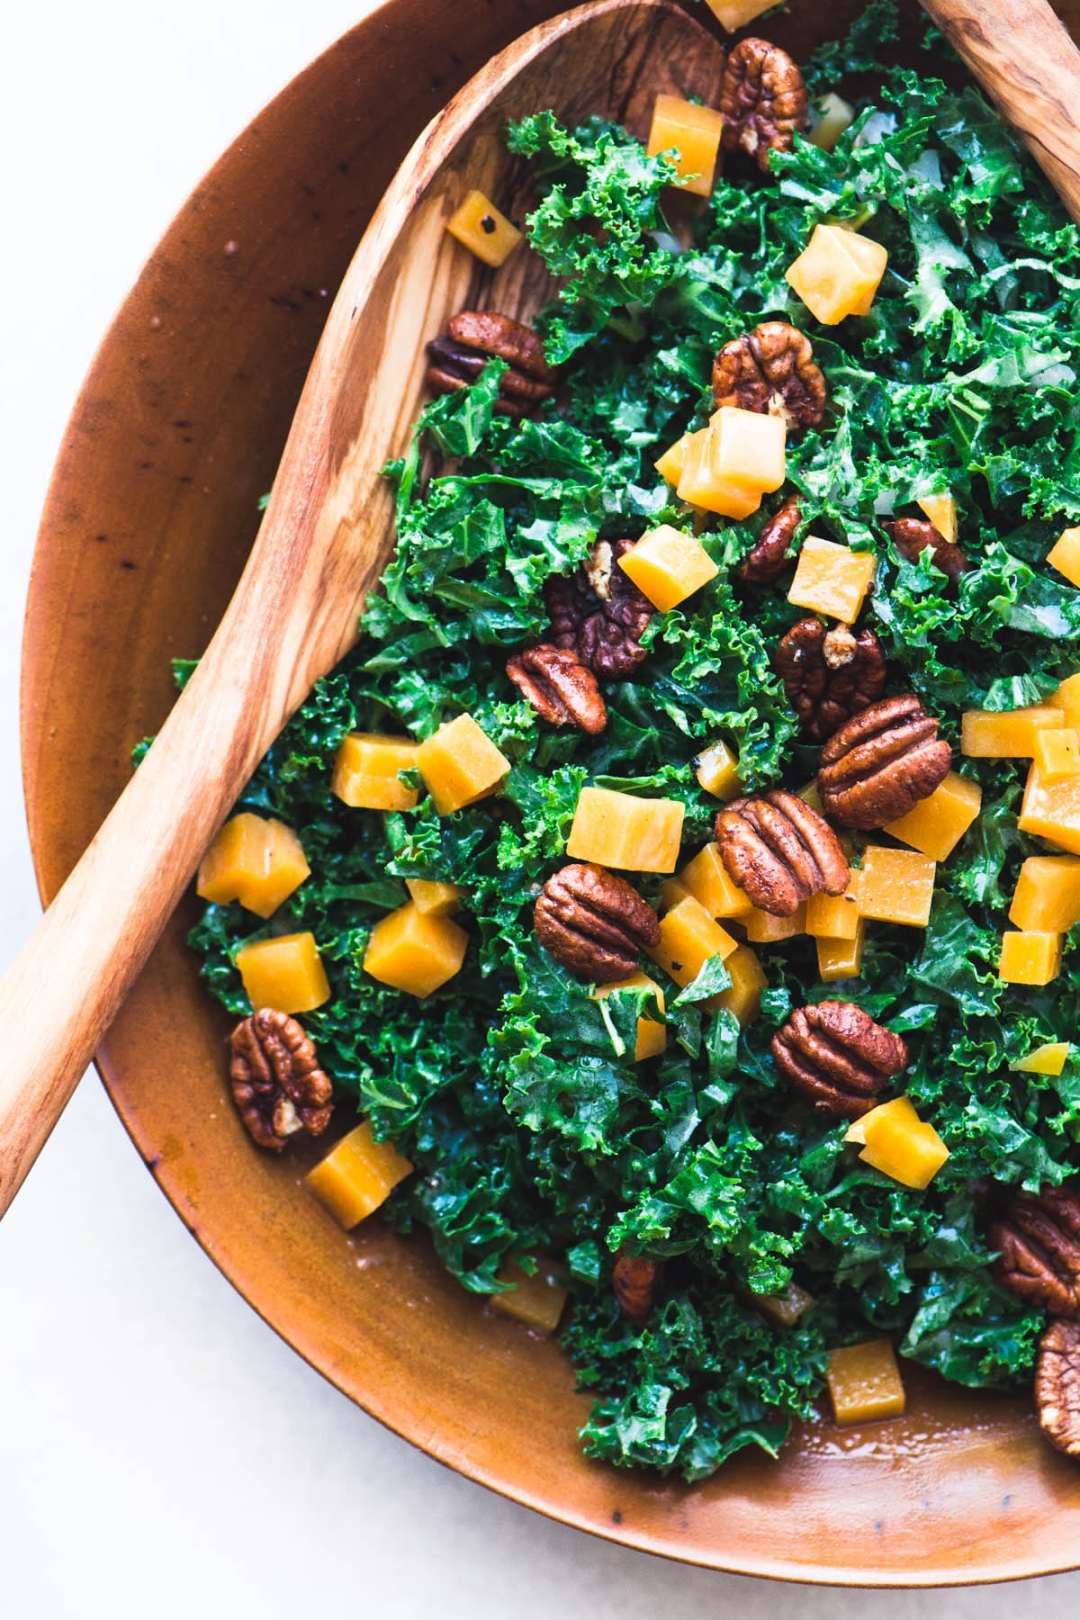 Kale and butternut squash salad in a wooden bowl with wooden salad servers